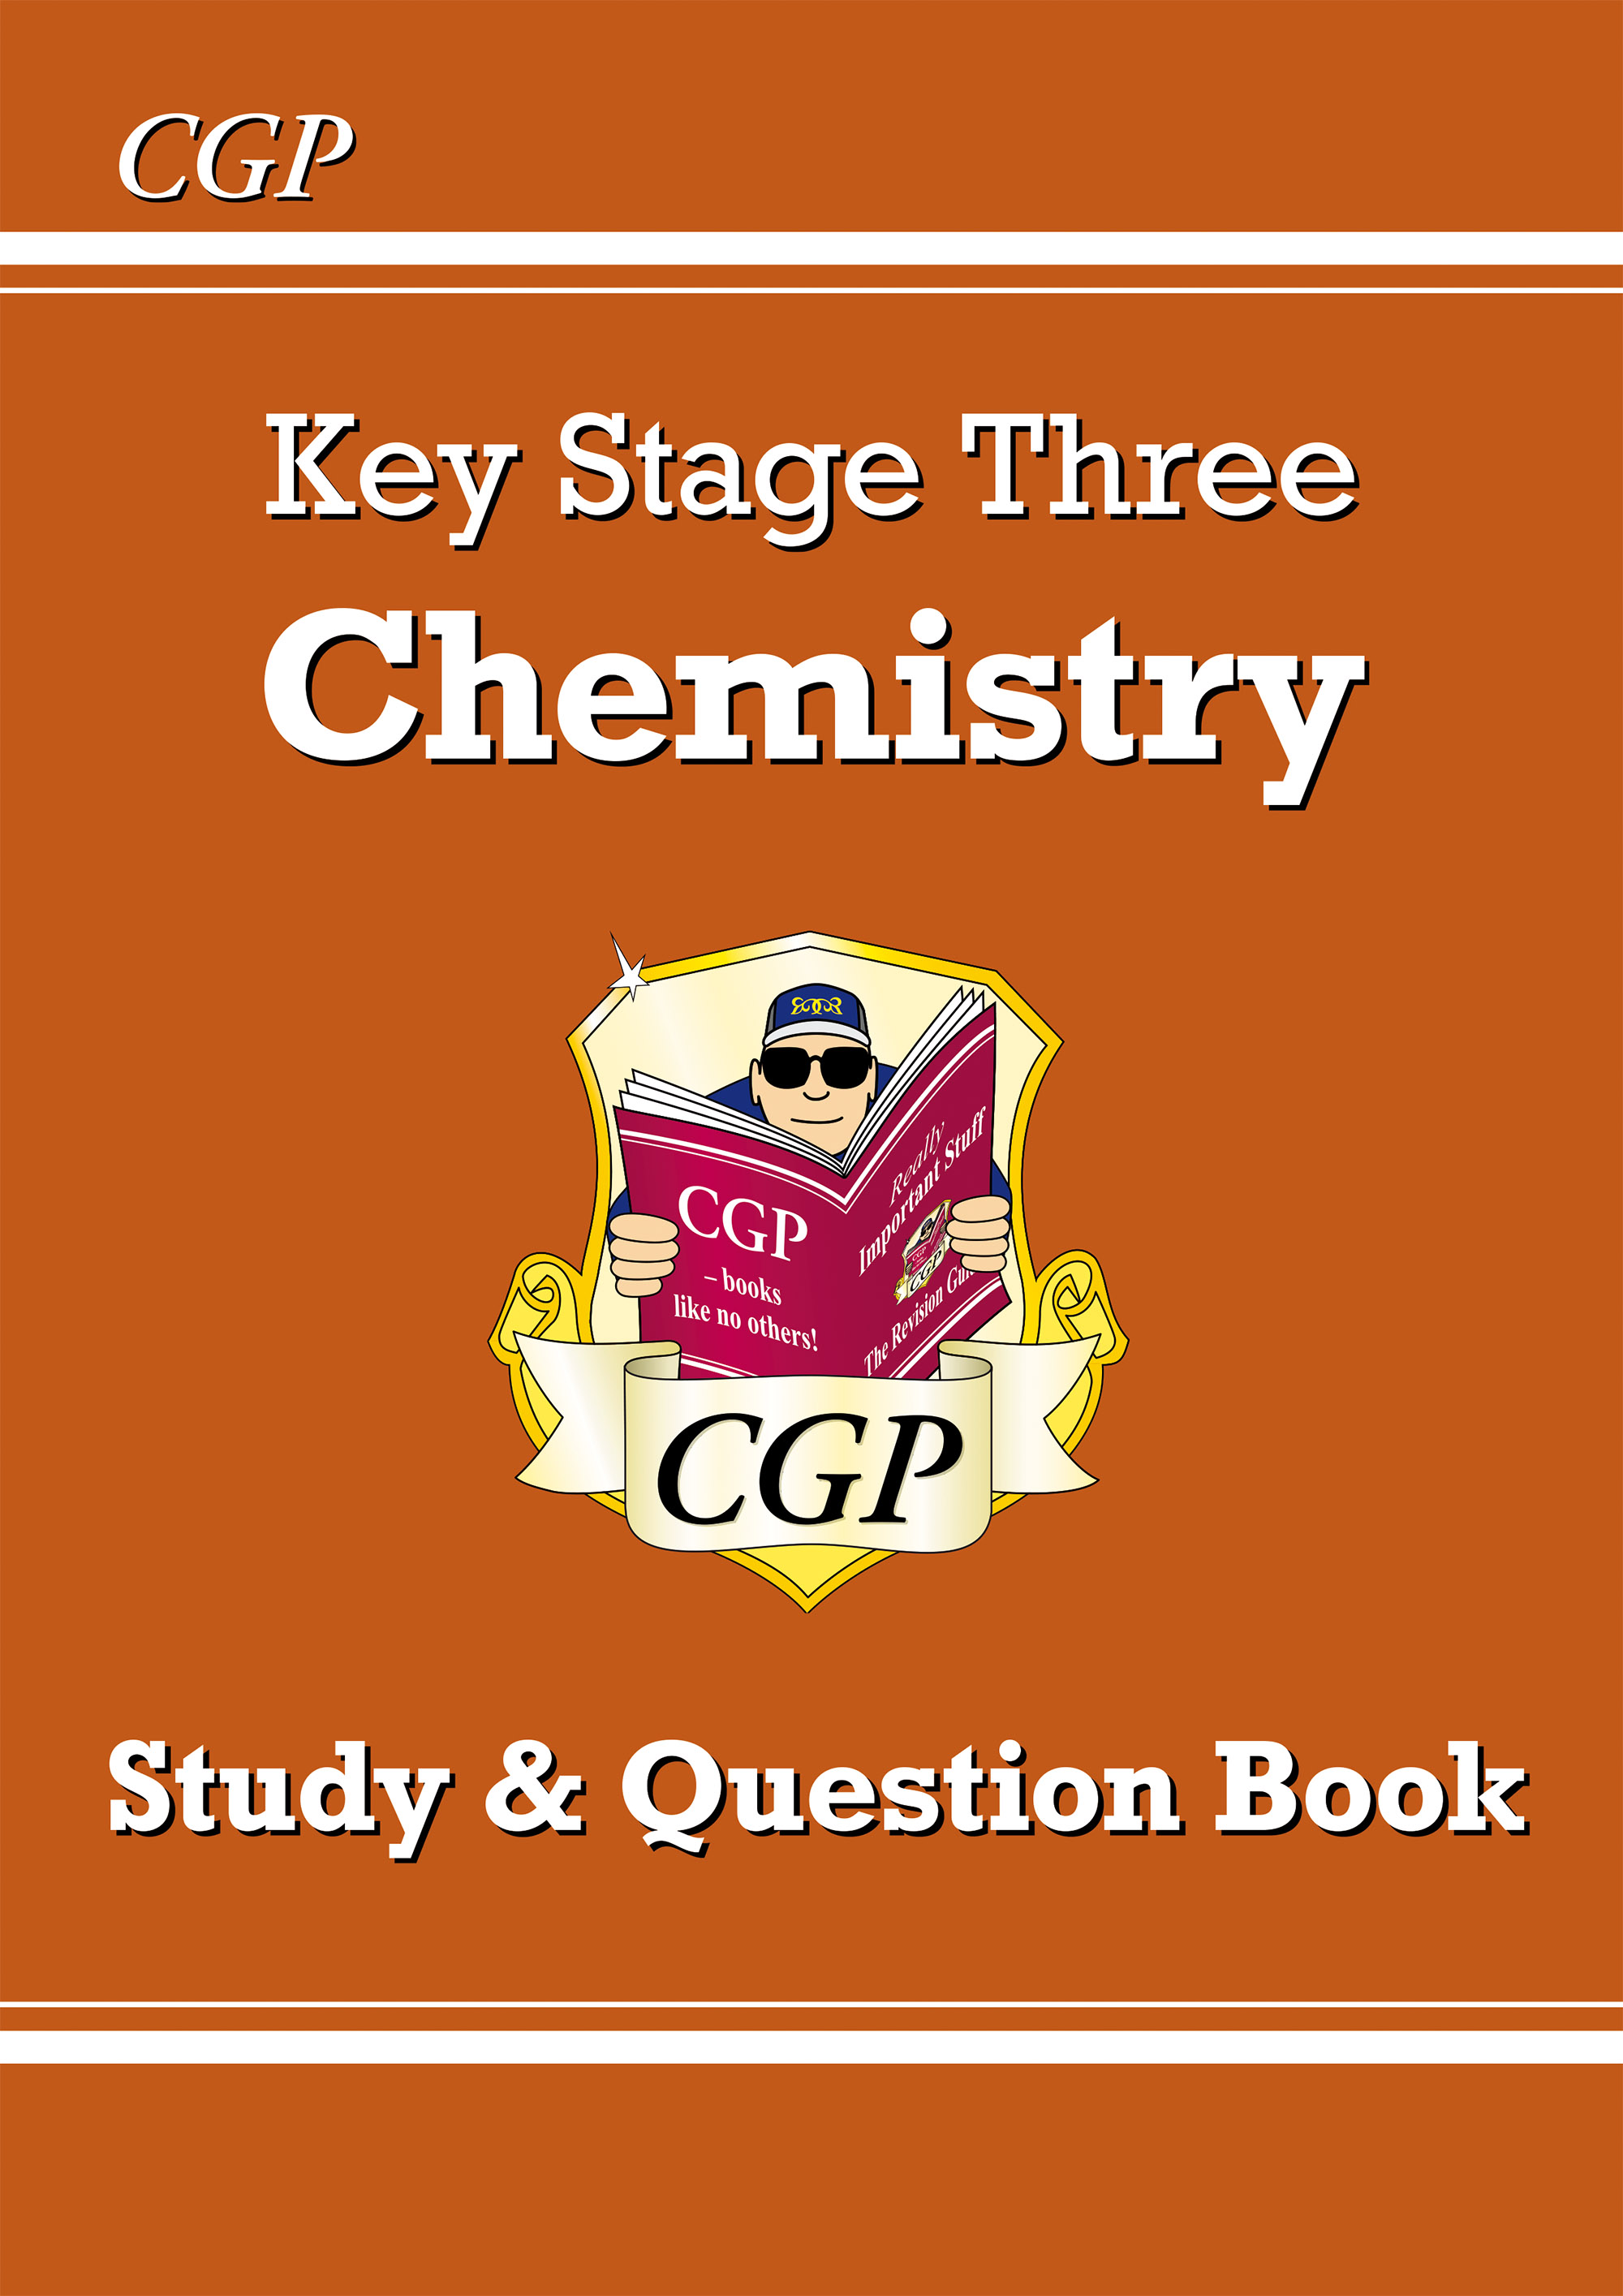 CHQ32DK - KS3 Chemistry Study & Question Book - Higher